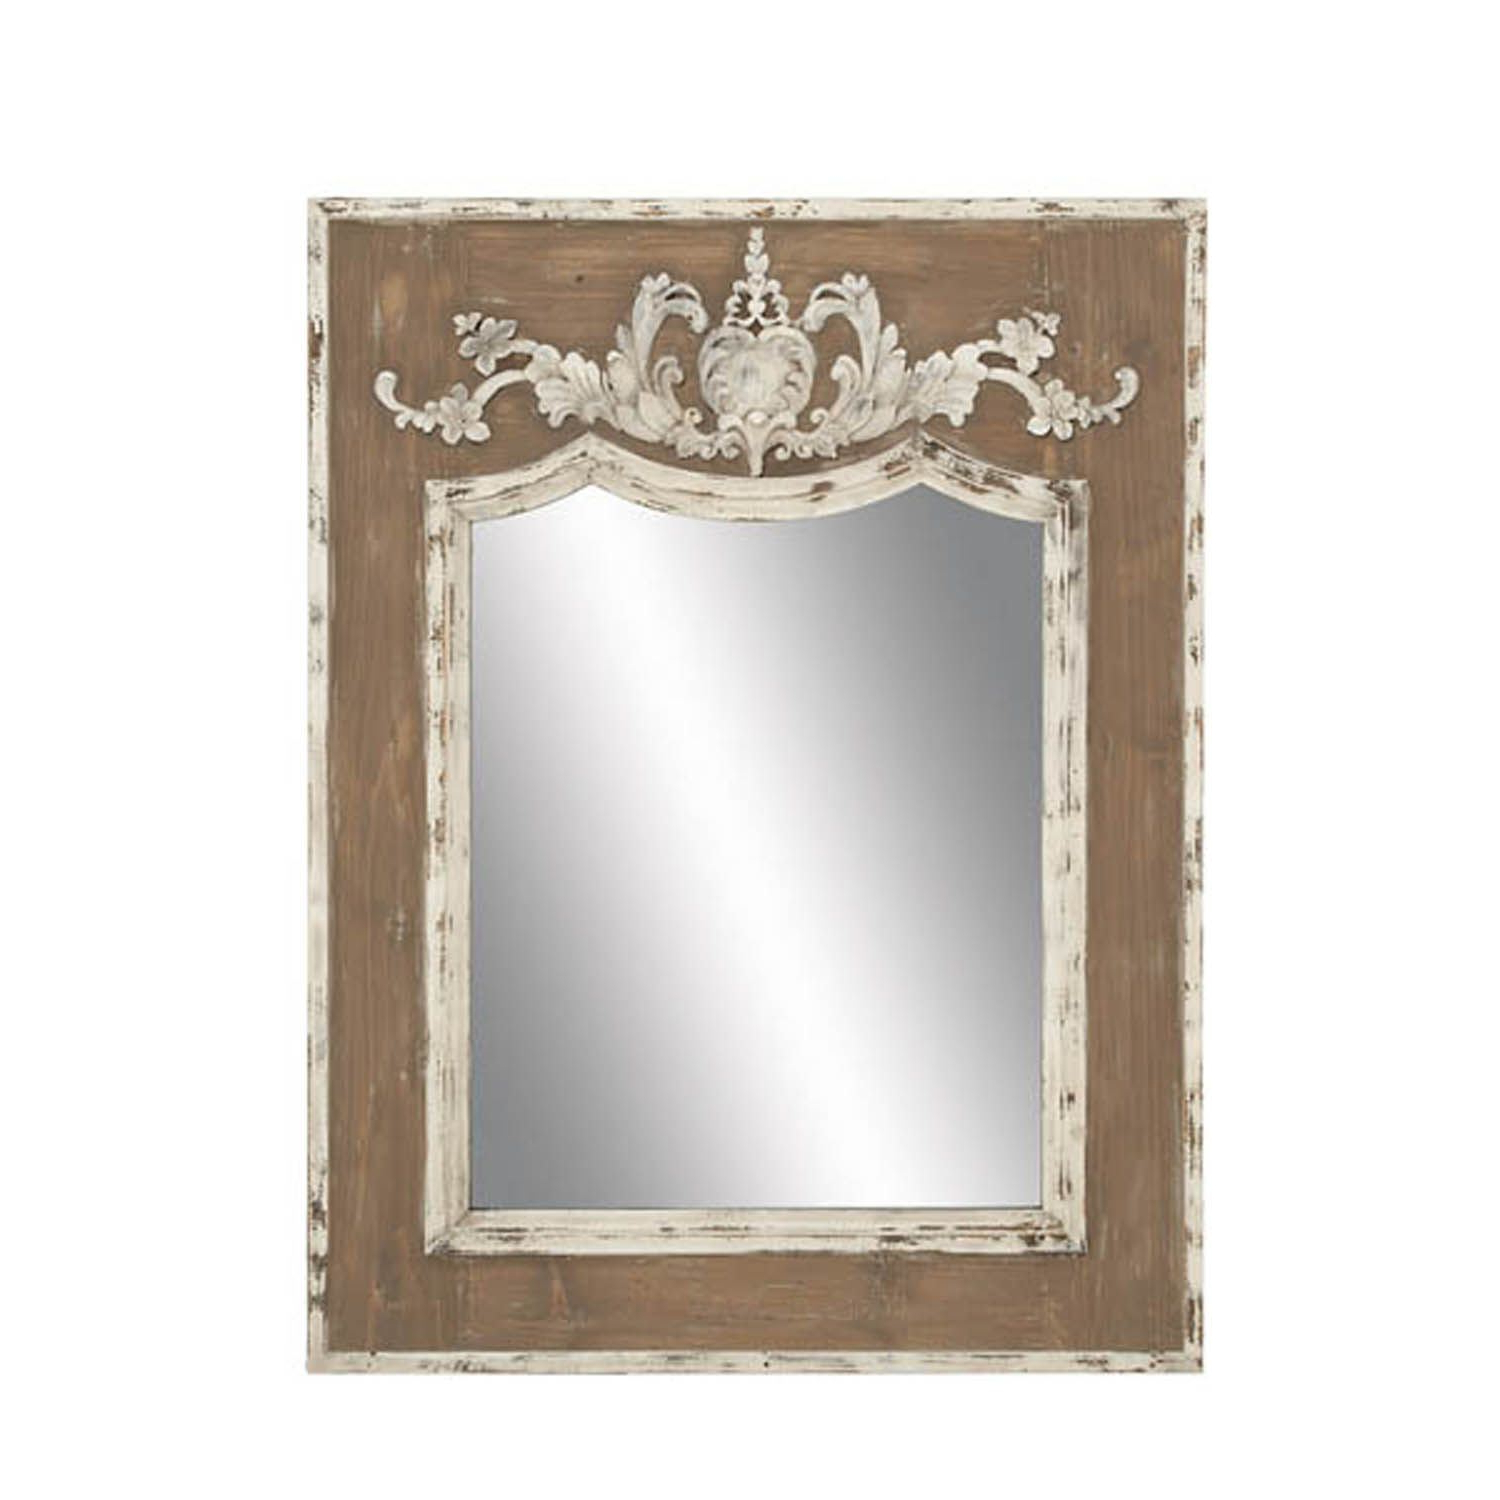 Well Known Wooden Framed Wall Mirrors Inside Wood Frame Wall Mirror (View 20 of 20)